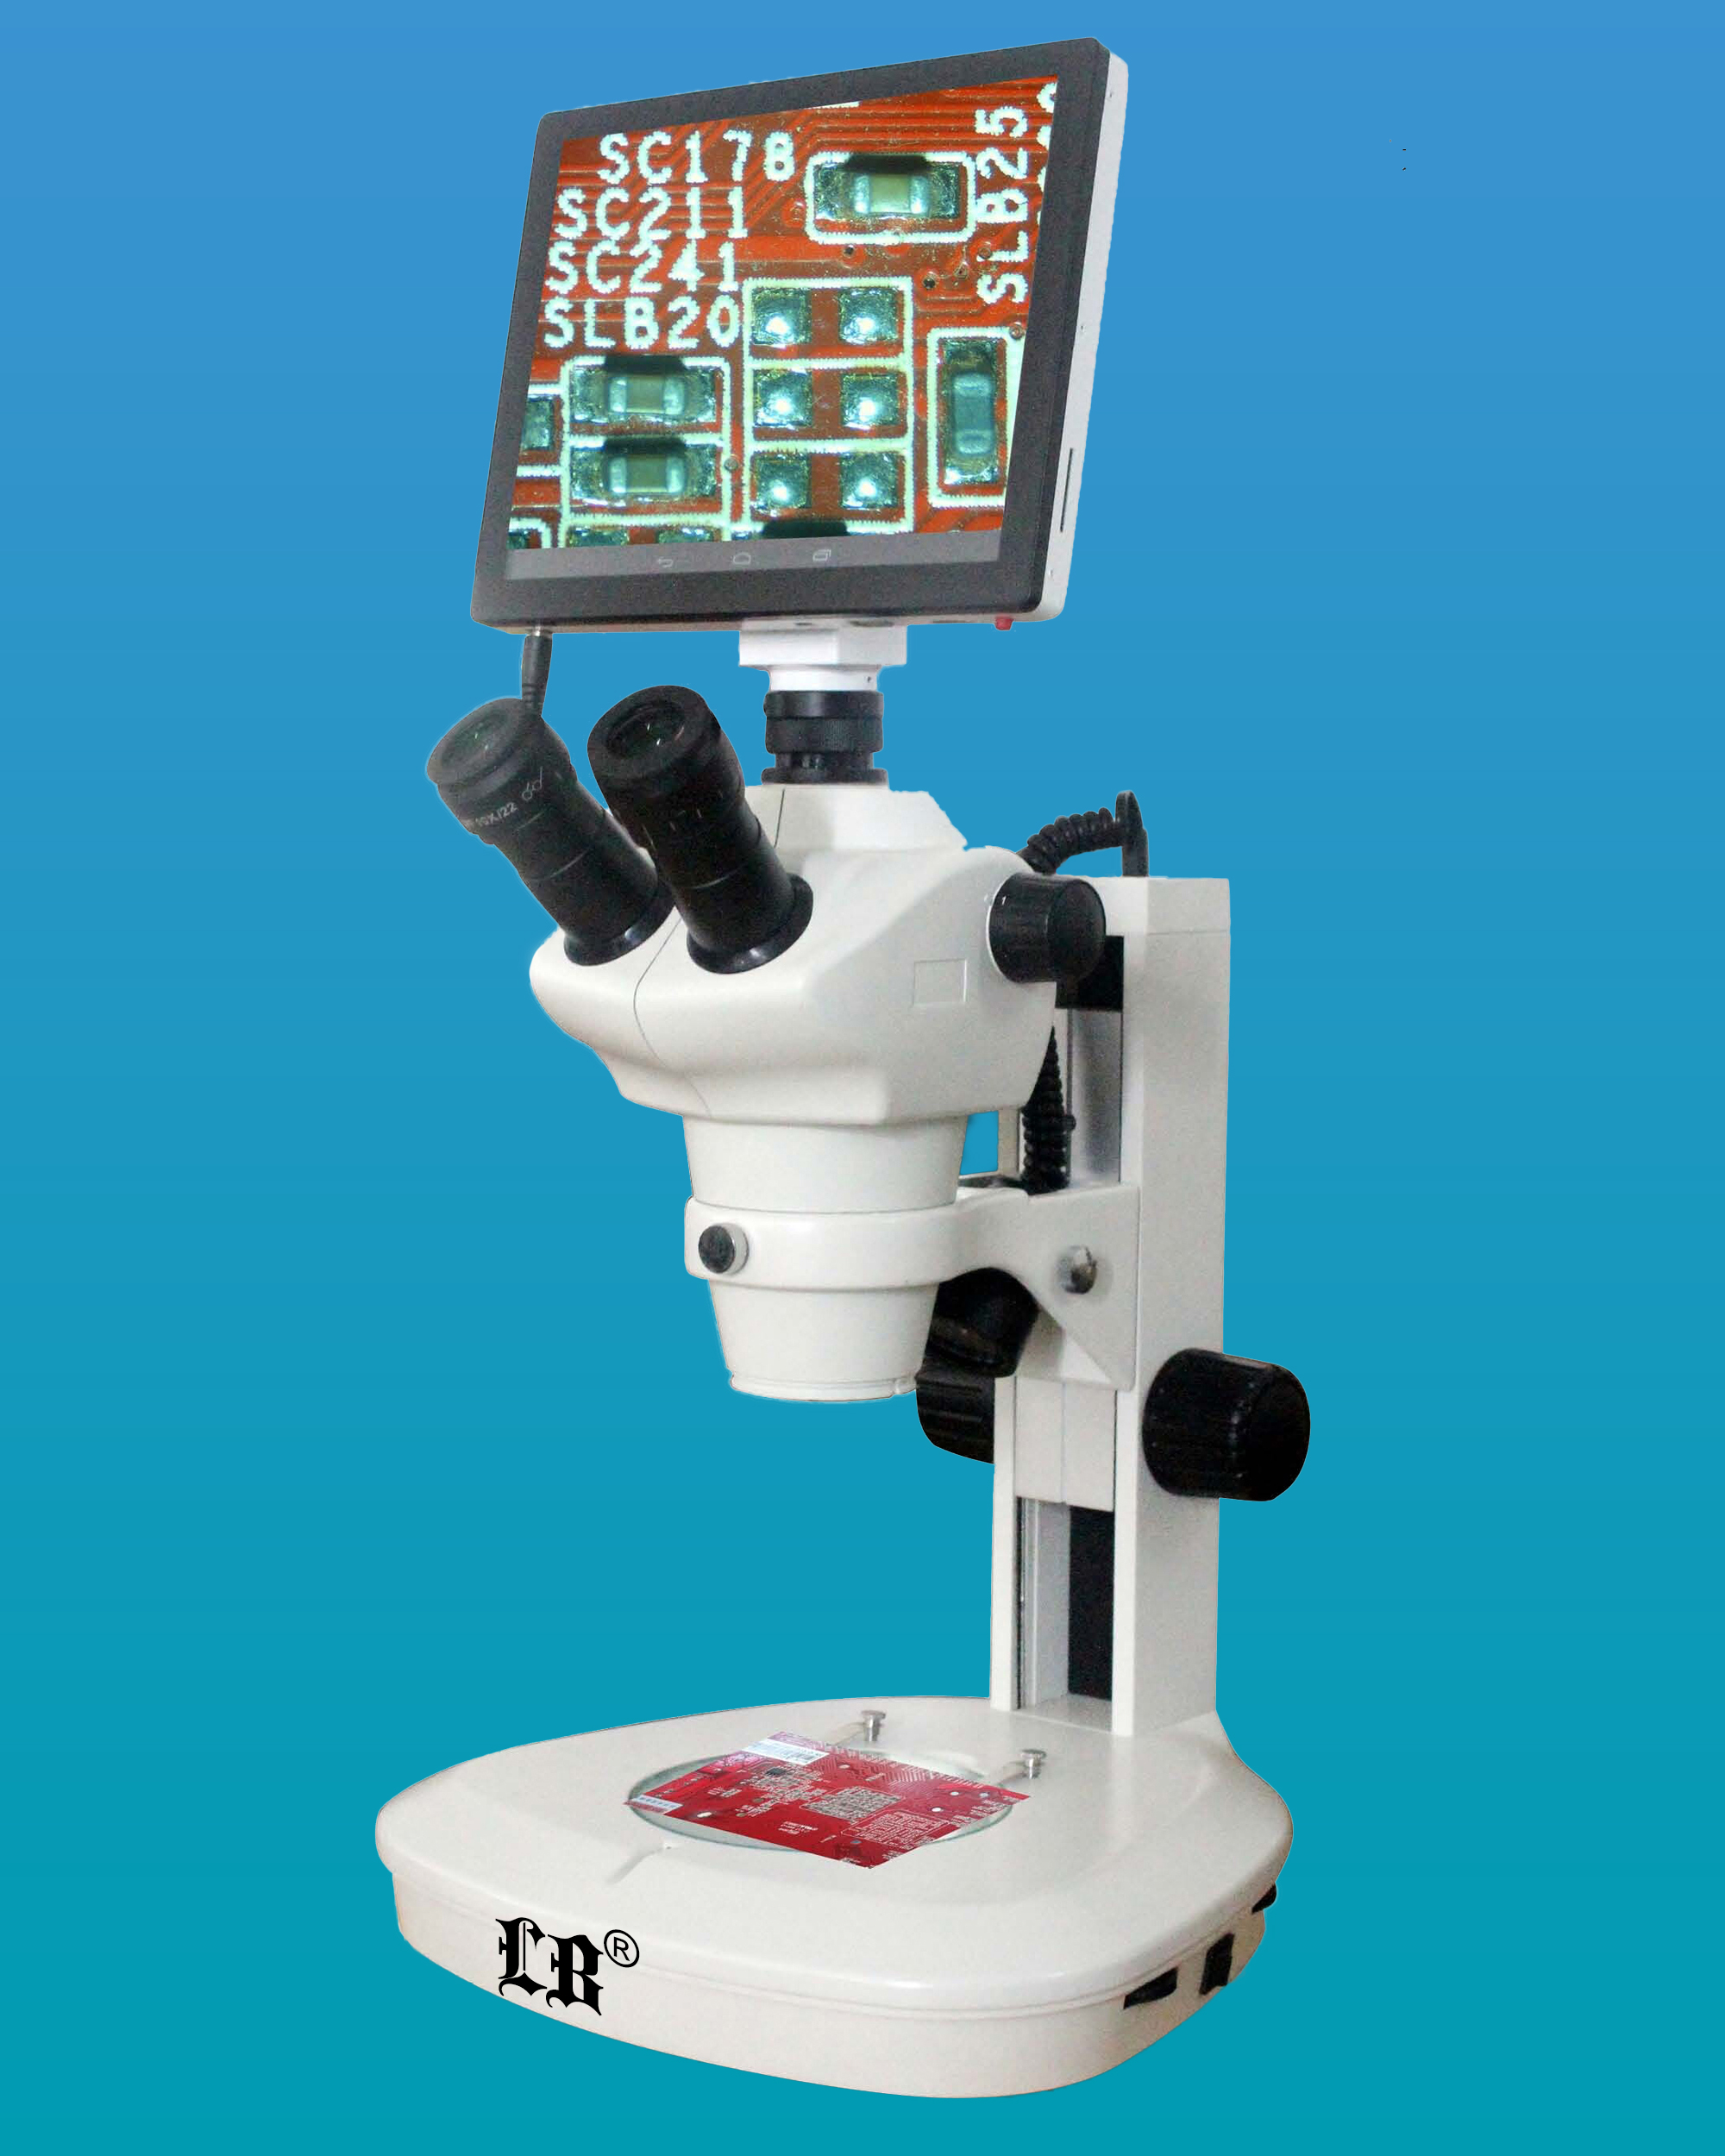 [LB-356] Digital Zoom Stereo Microscope w/ 5MP HD Touch Screen Digital Camera